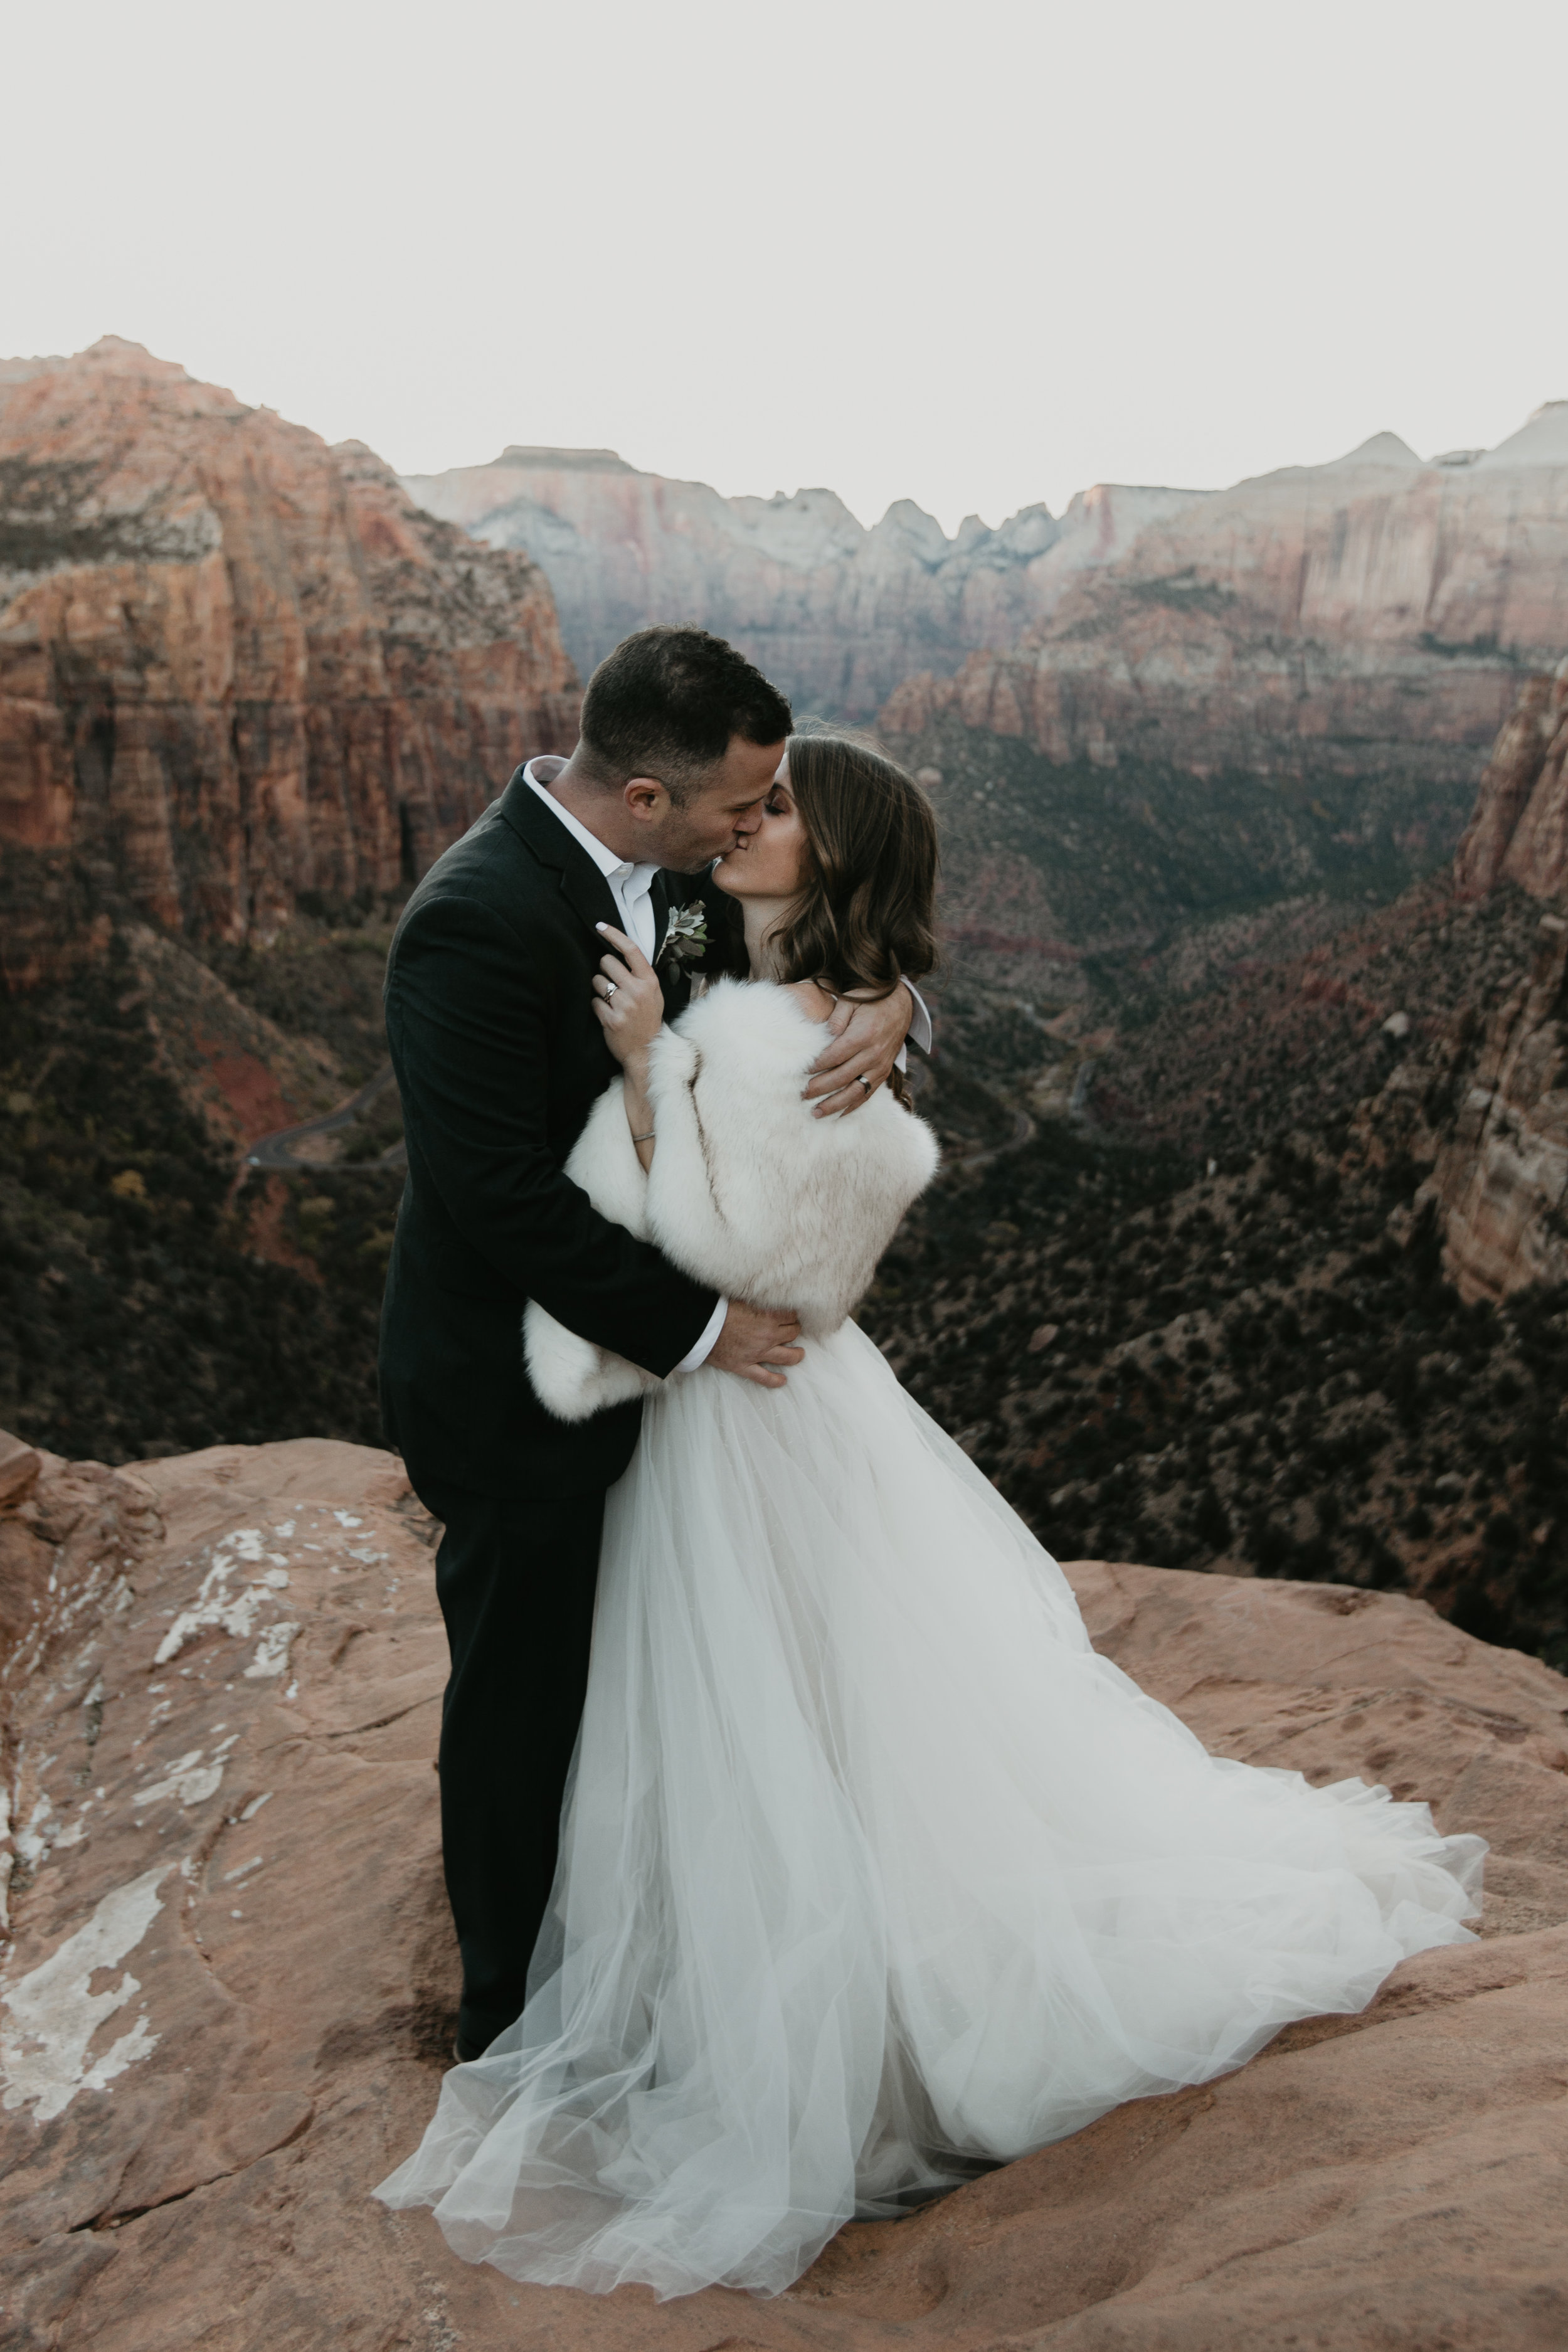 nicole-daacke-photography-zion-national-park-elopement-photographer-canyon-overlook-trail-elope-hiking-adventure-wedding-photos-fall-utah-red-rock-canyon-stgeorge-eloping-photographer-70.jpg